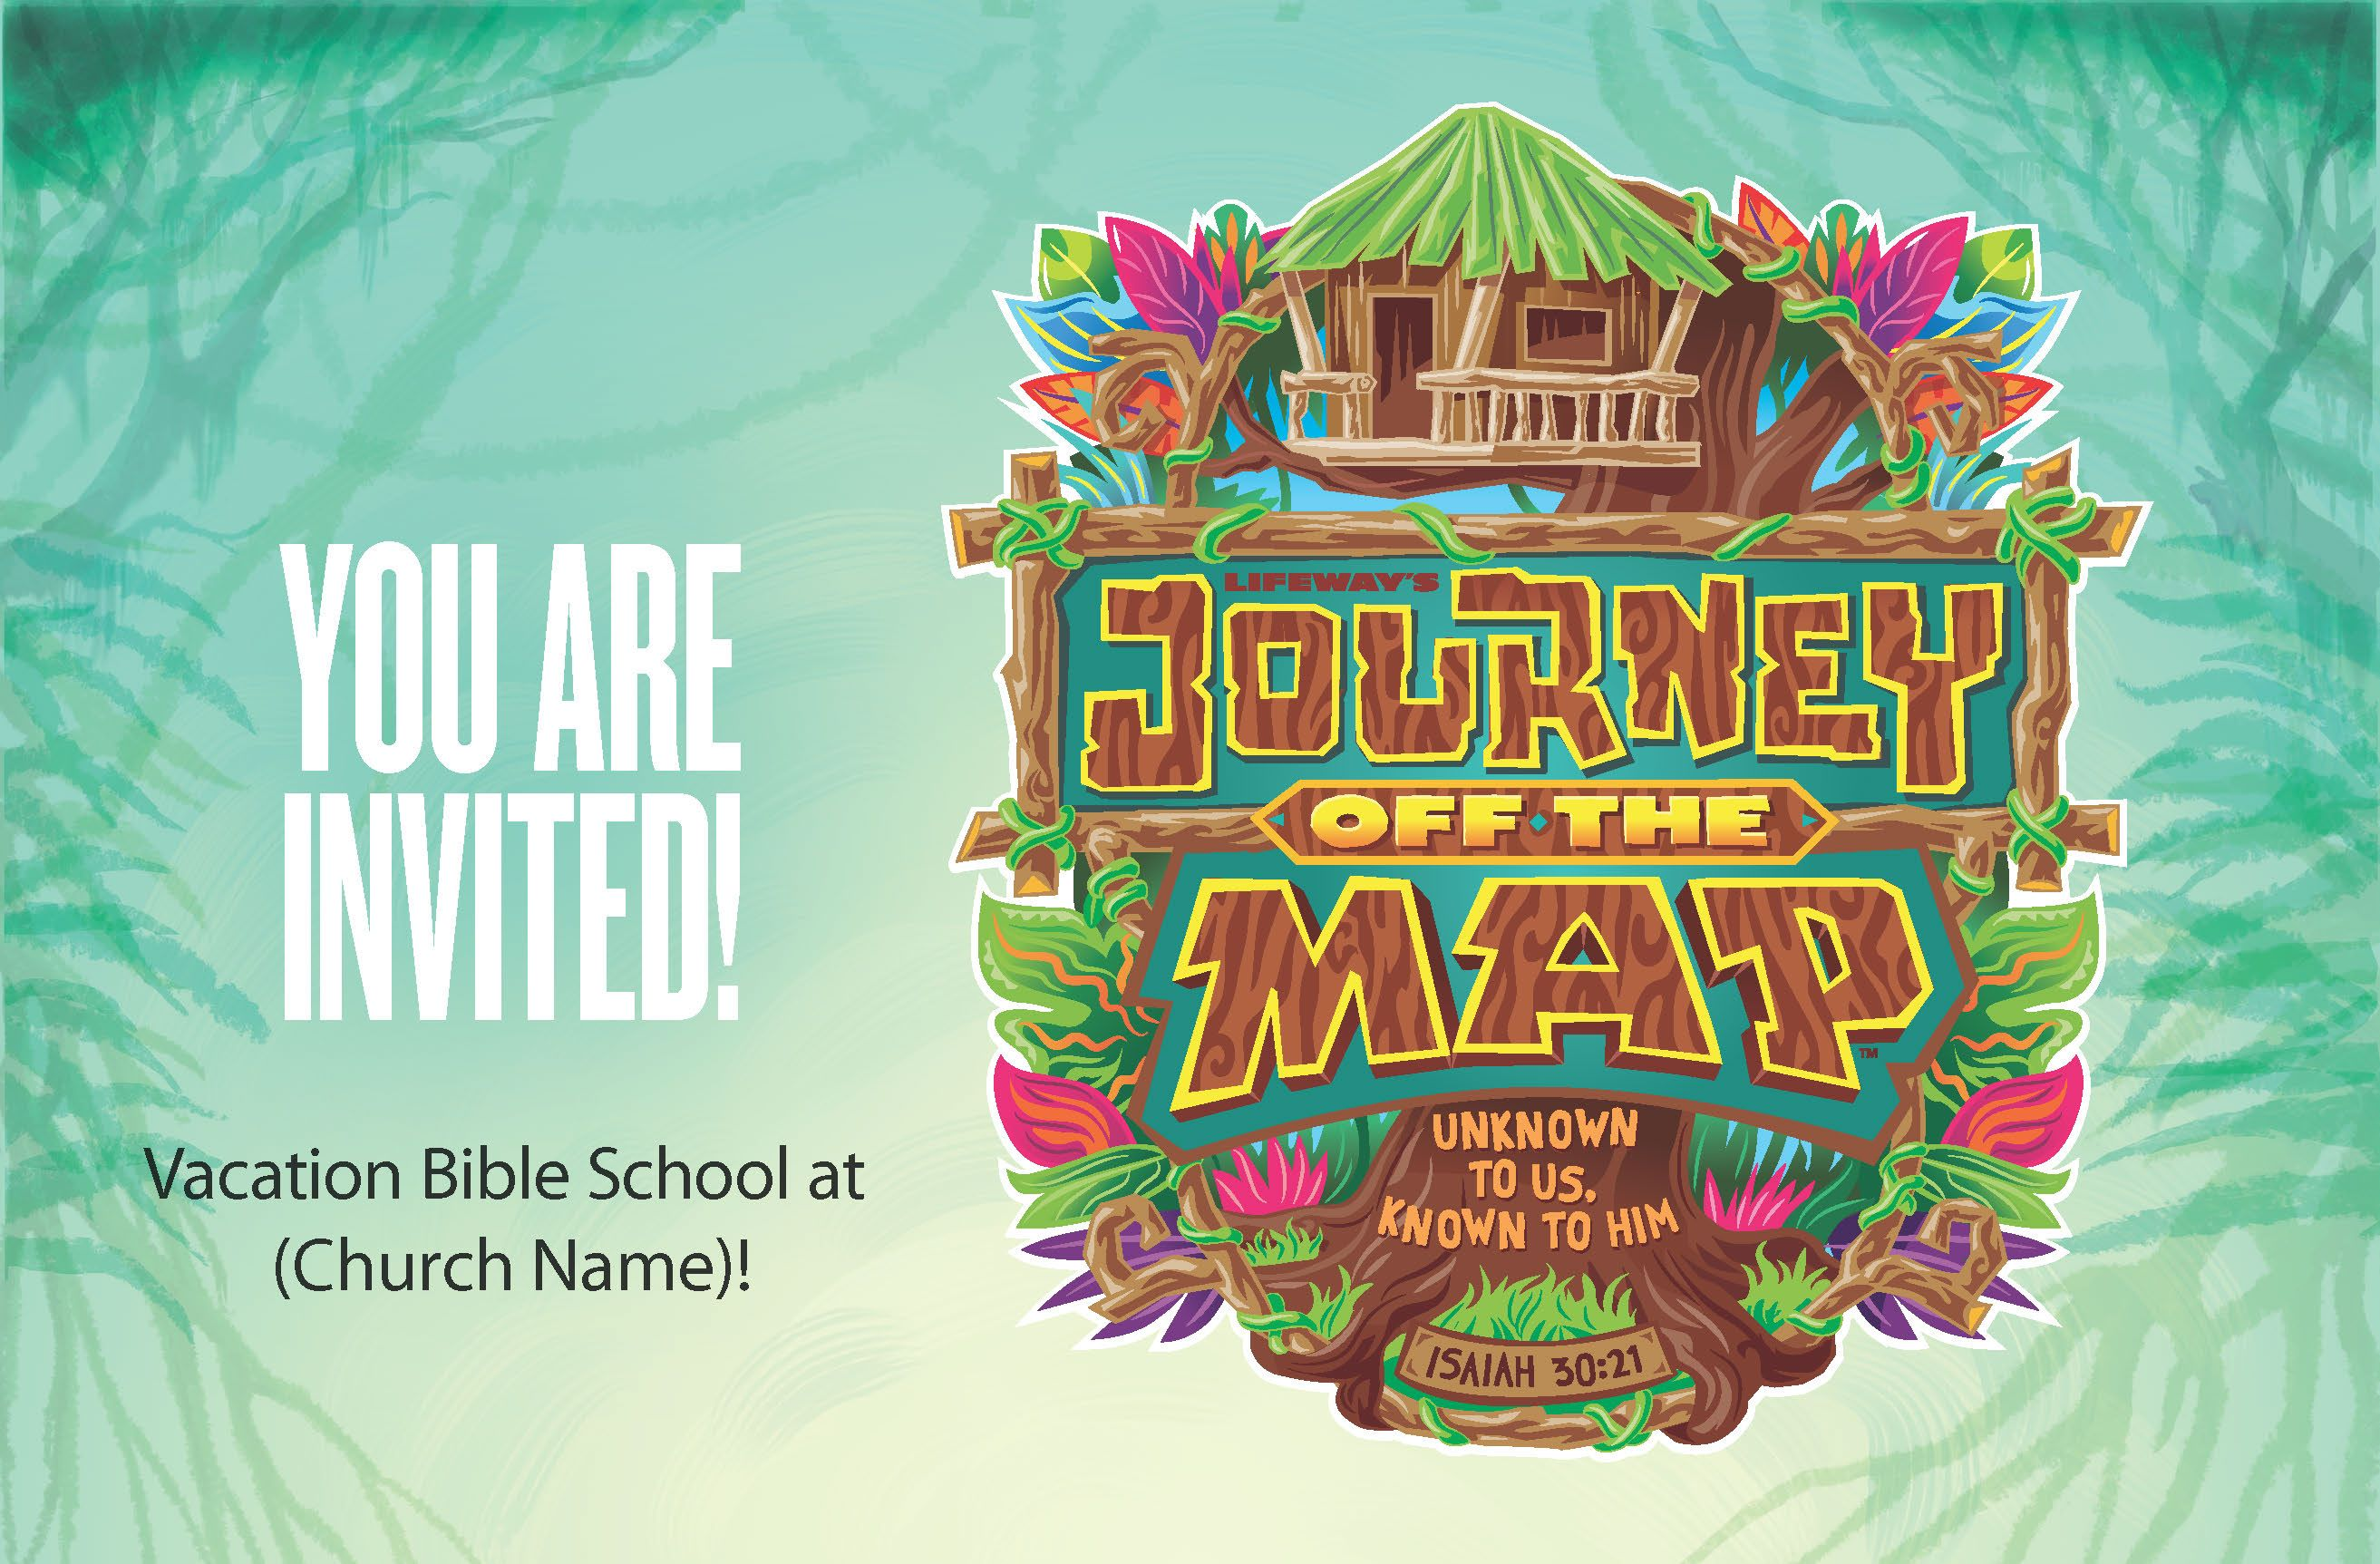 Journey Off The Map Vacation Bible School Theme